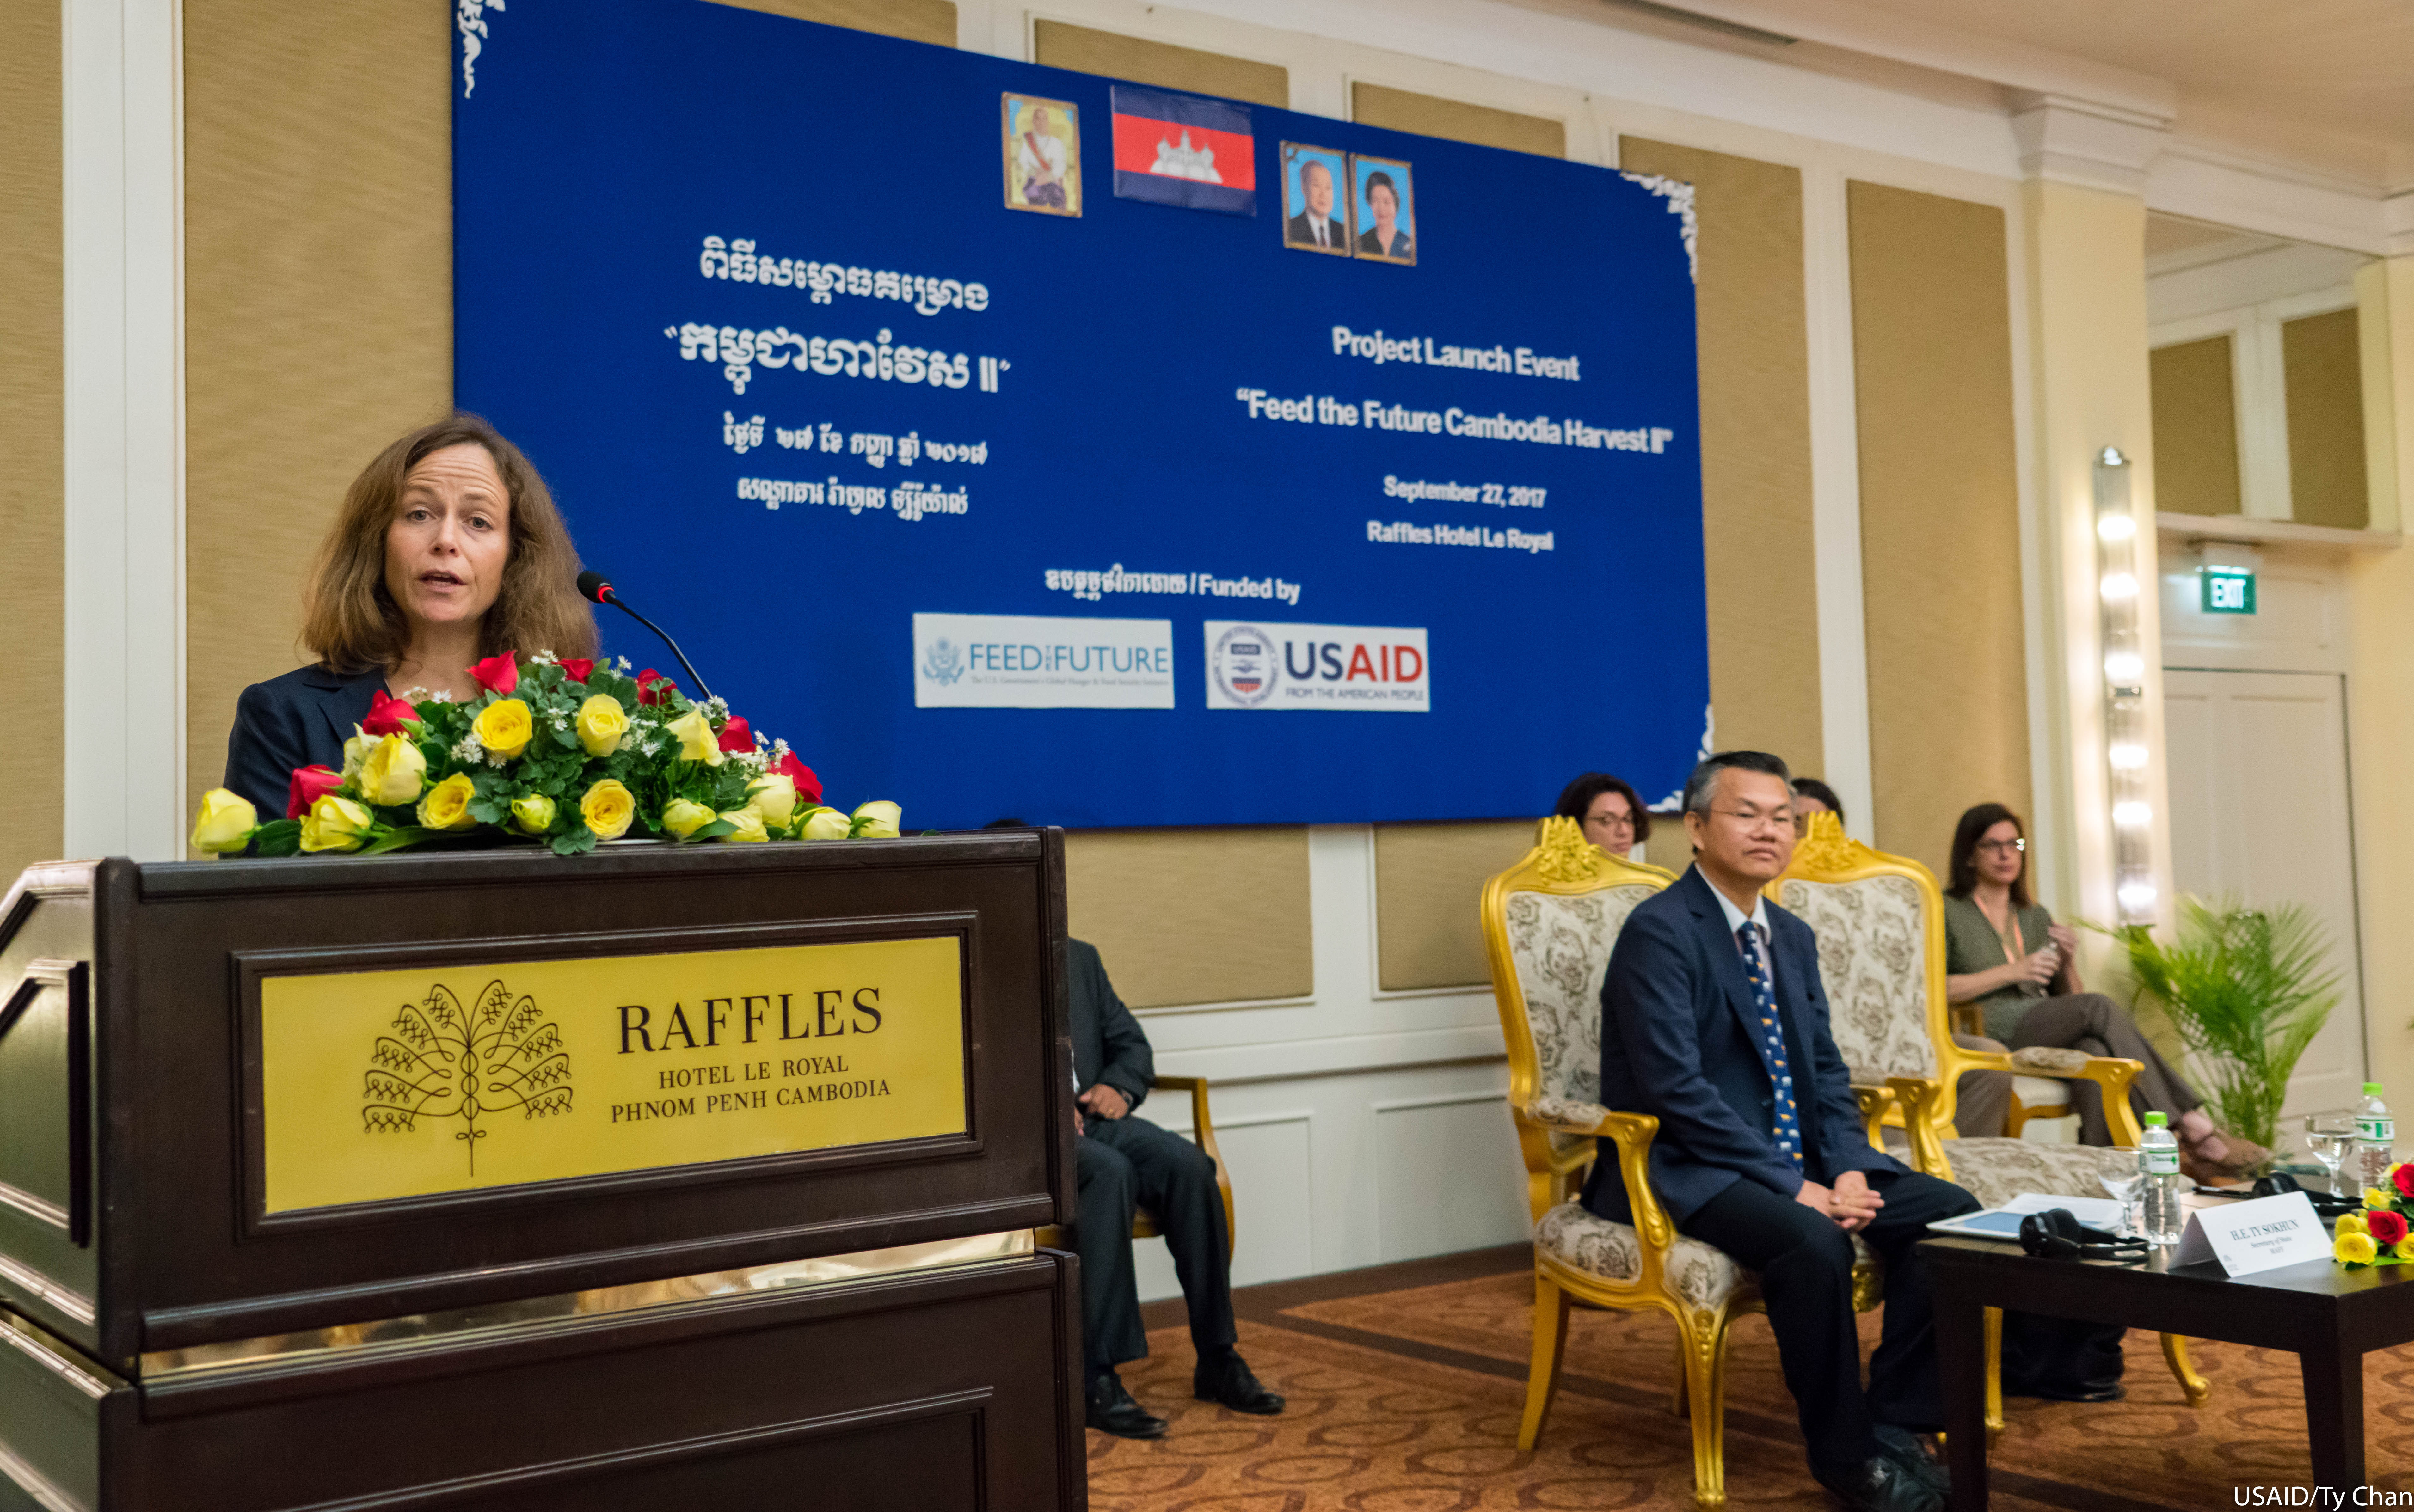 Remarks by Polly Dunford, Mission Director, USAID Cambodia